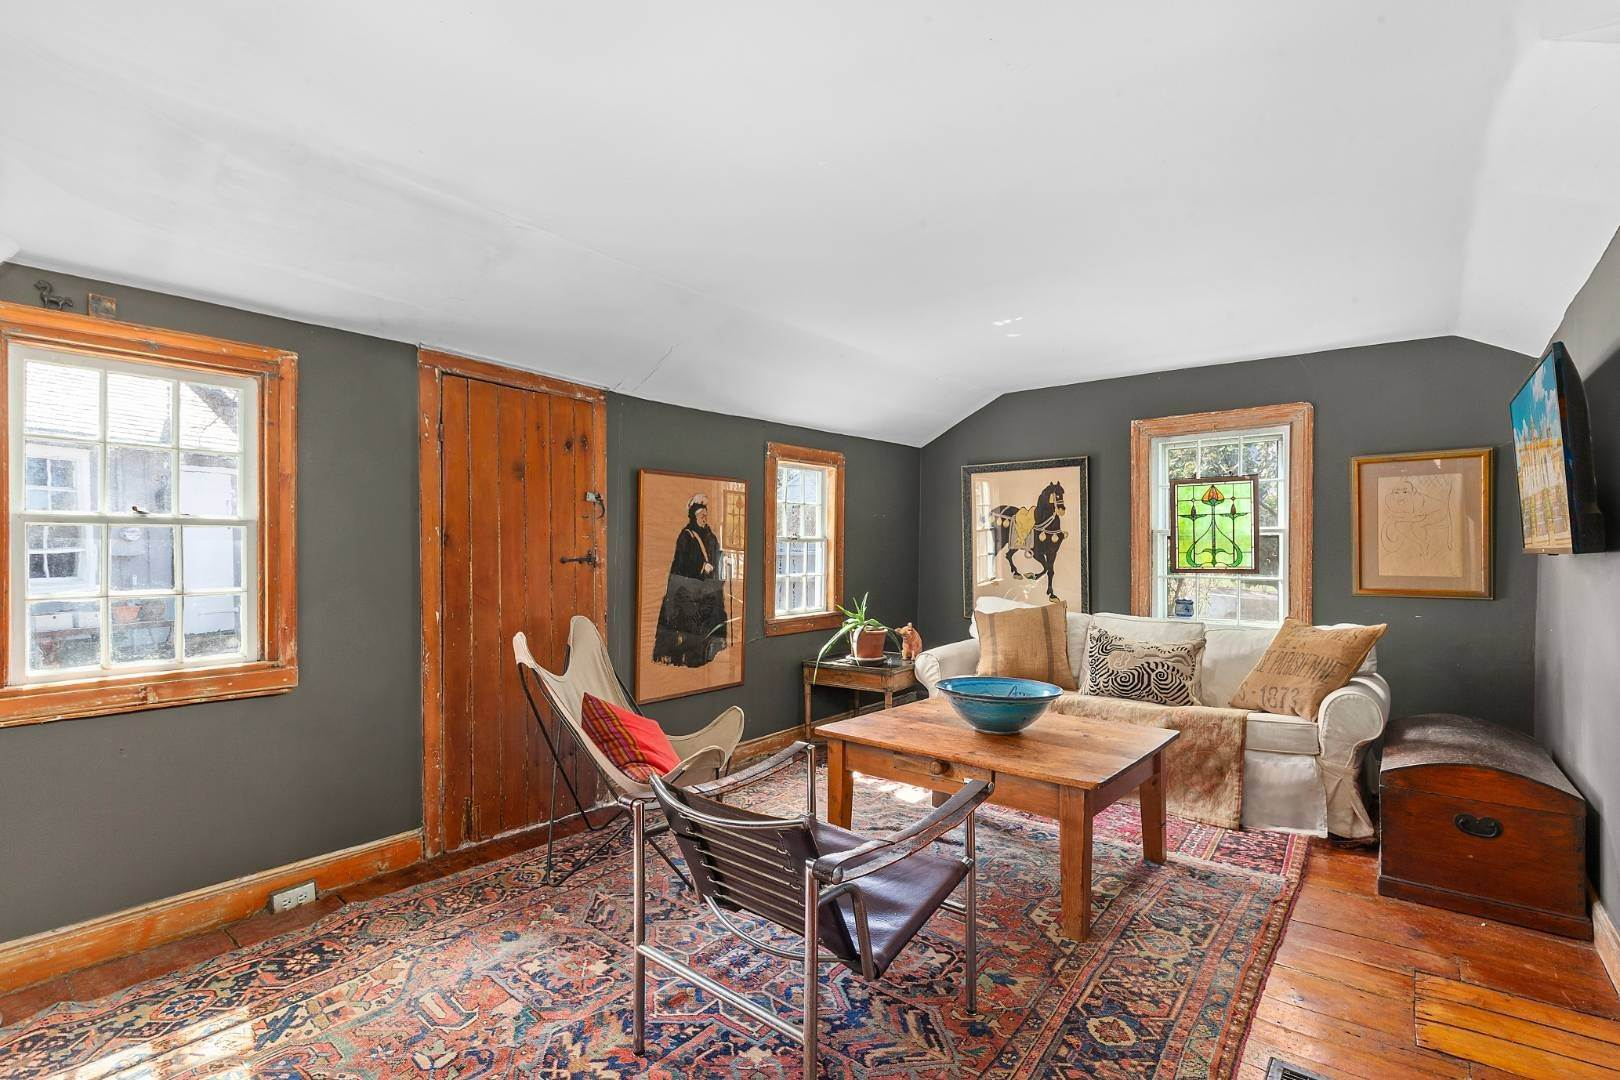 3. Single Family Home for Sale at Sag Harbor, NY 11963